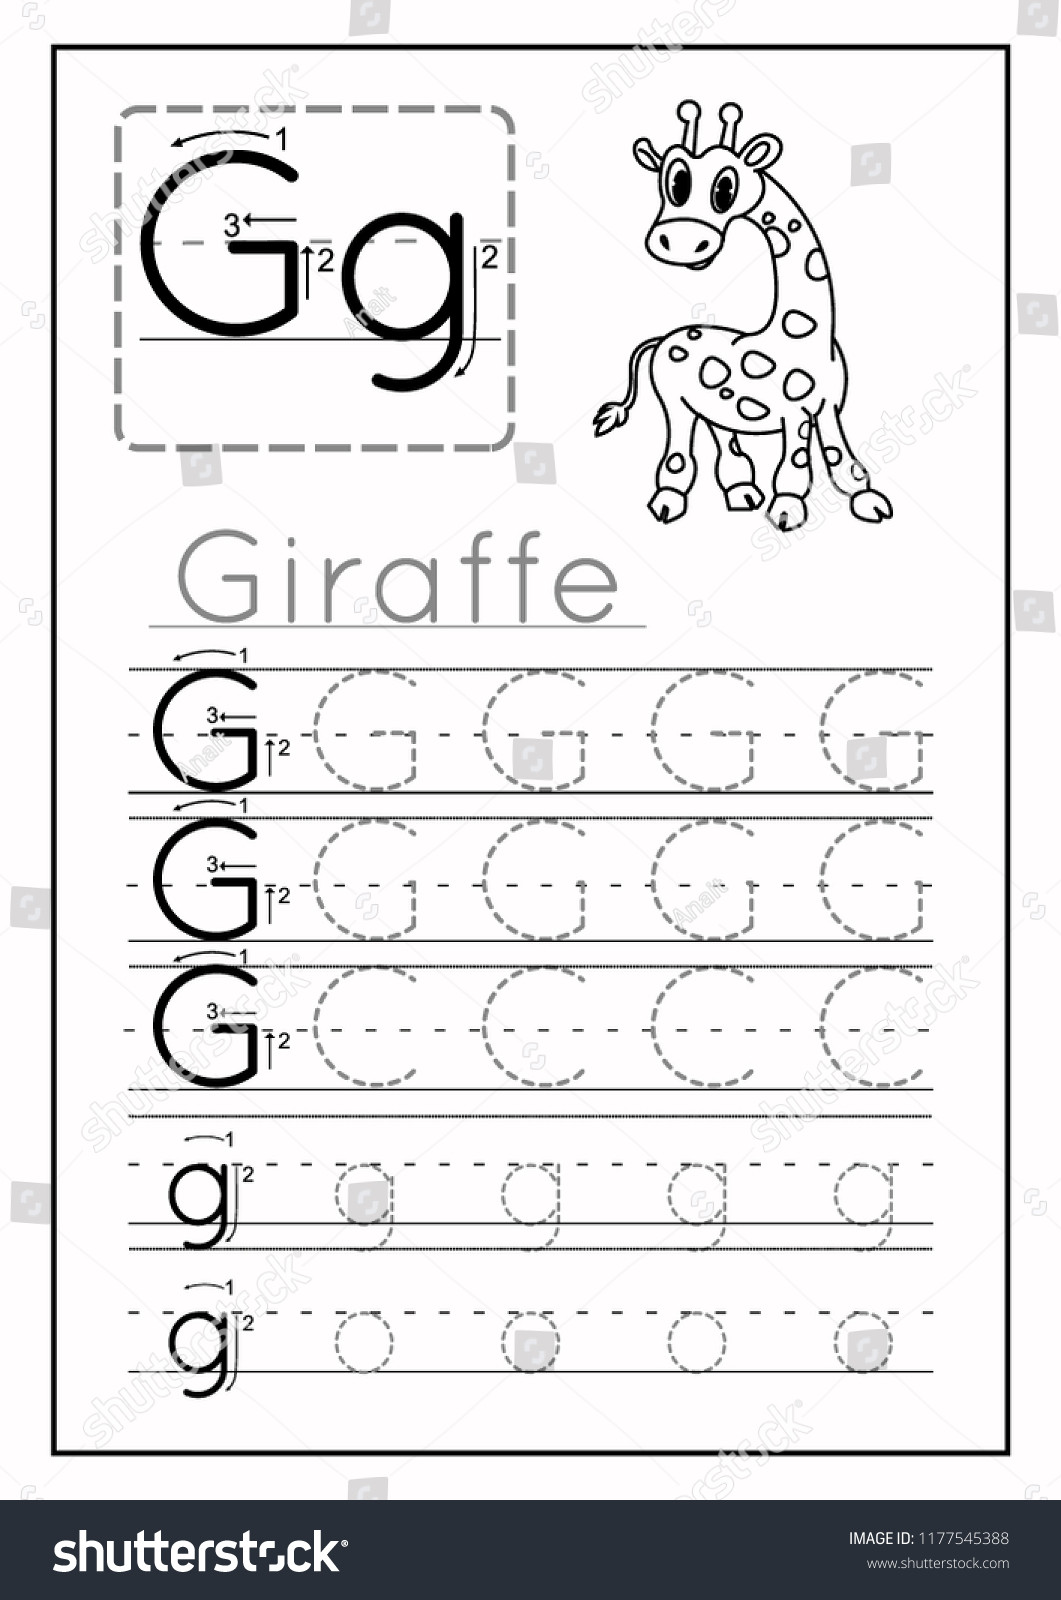 Letter G Worksheet Preschool Writing Practice Letter G Printable Worksheet เวกเตอร์สต็อก